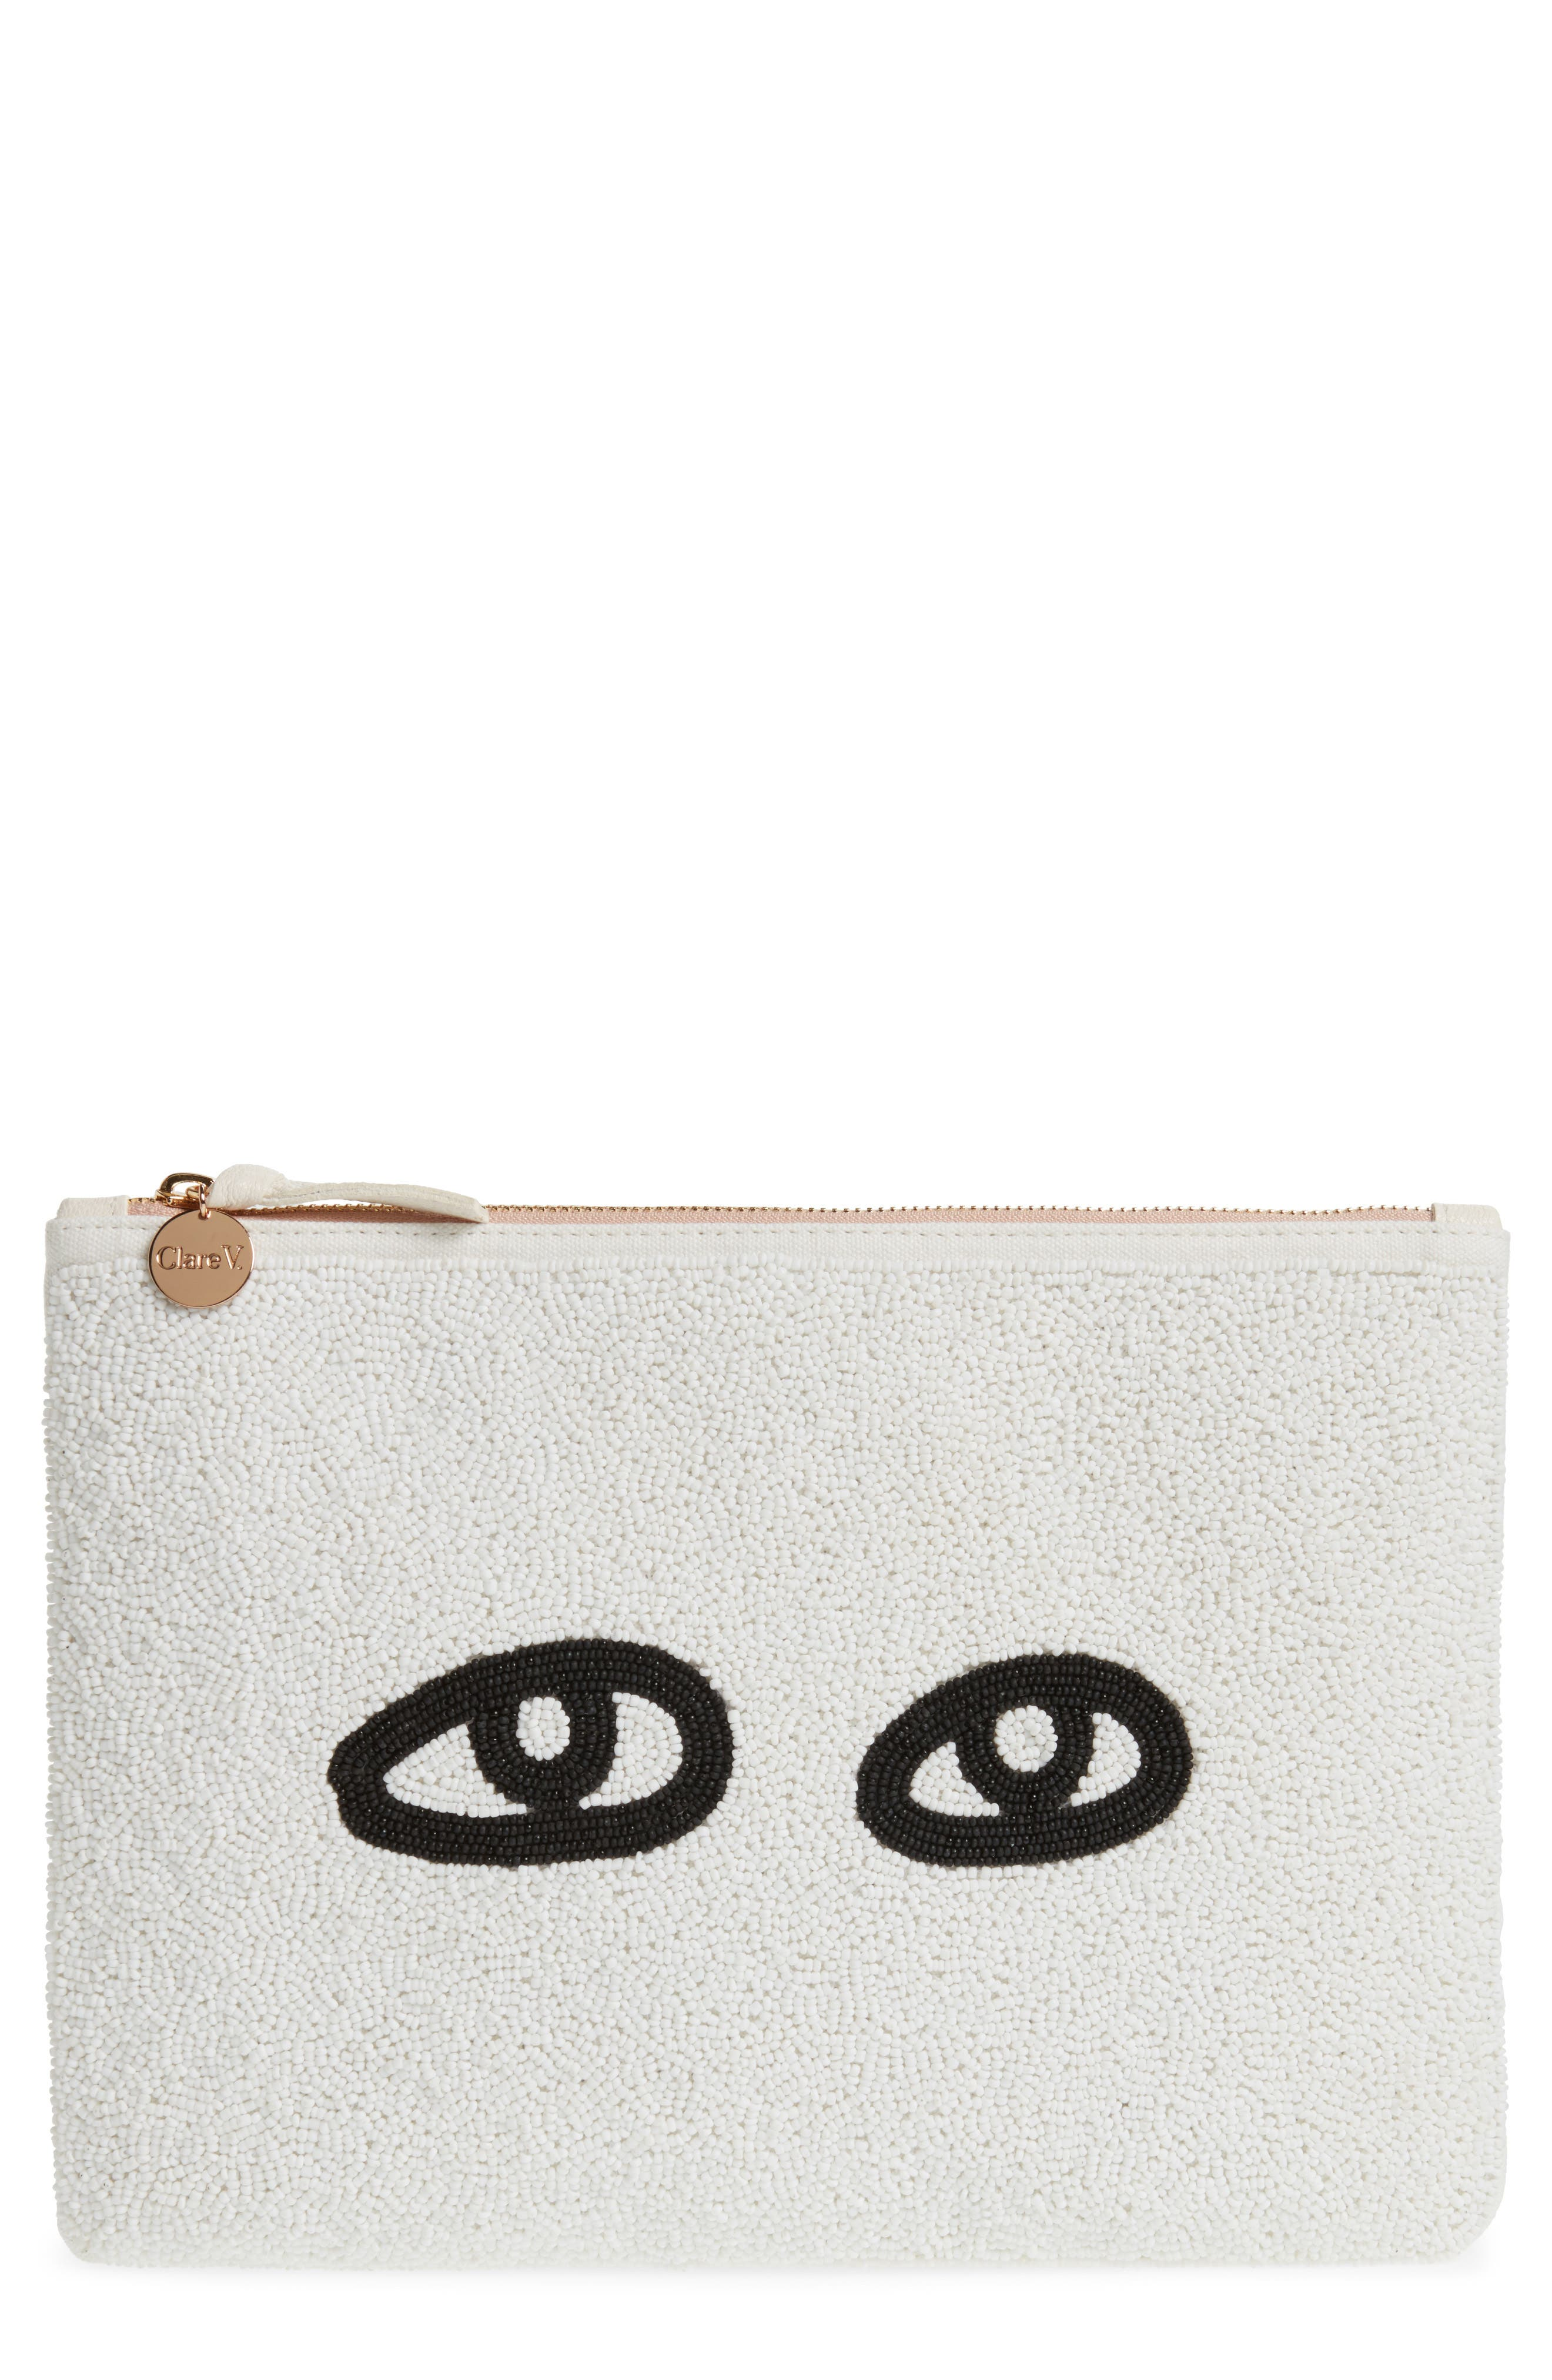 Eyes Printed Nappa Leather Clutch,                         Main,                         color, Beaded White With Black Eyes